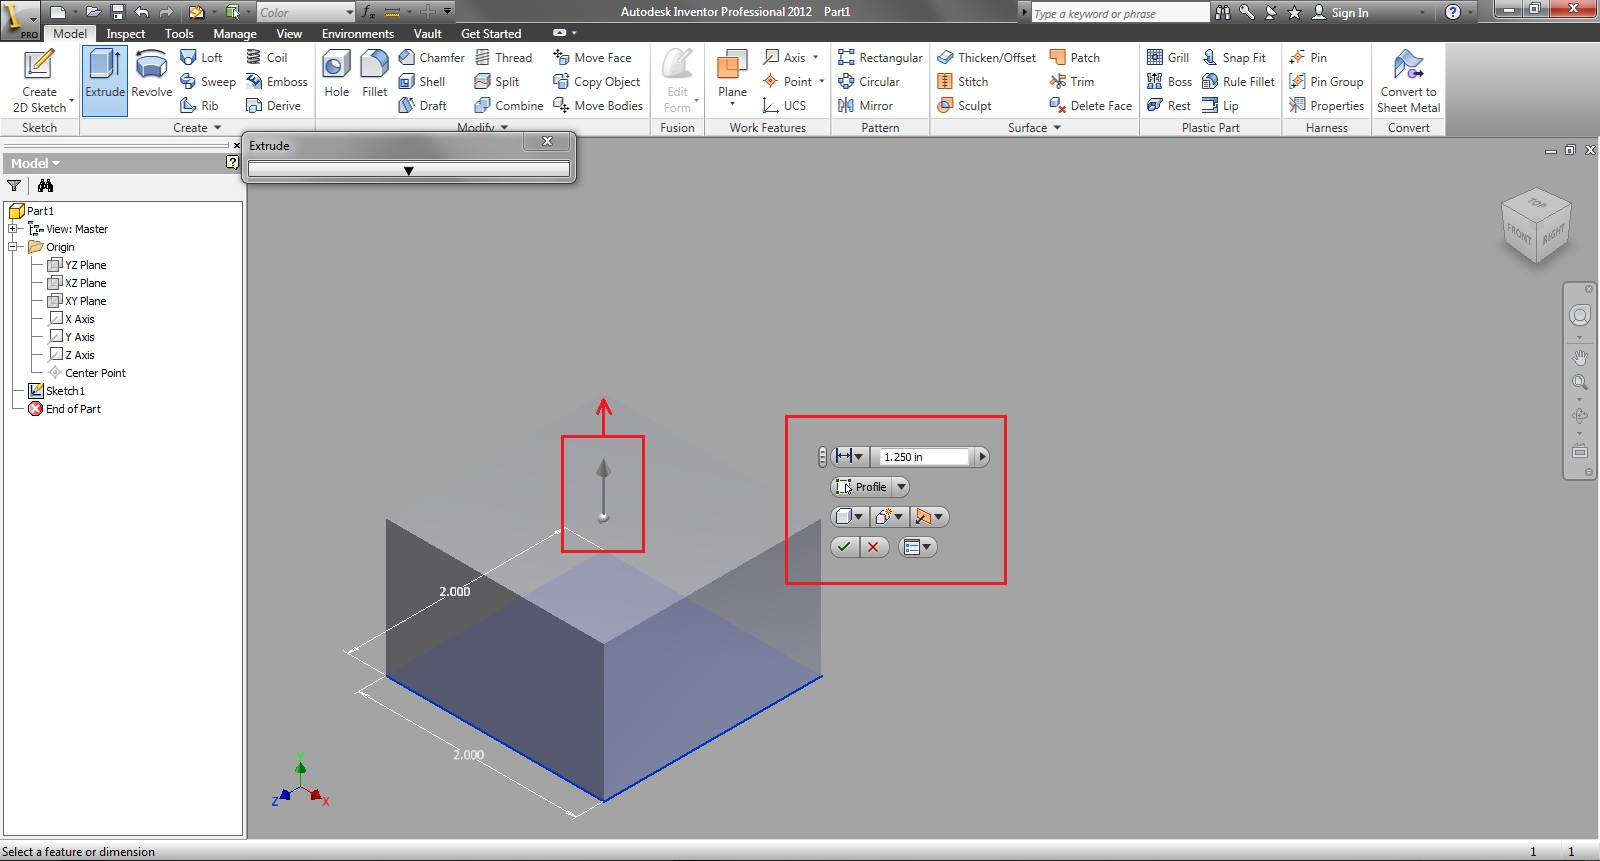 Tutorial: [BEGINNERS] Introduction to Autodesk Inventor | GrabCAD